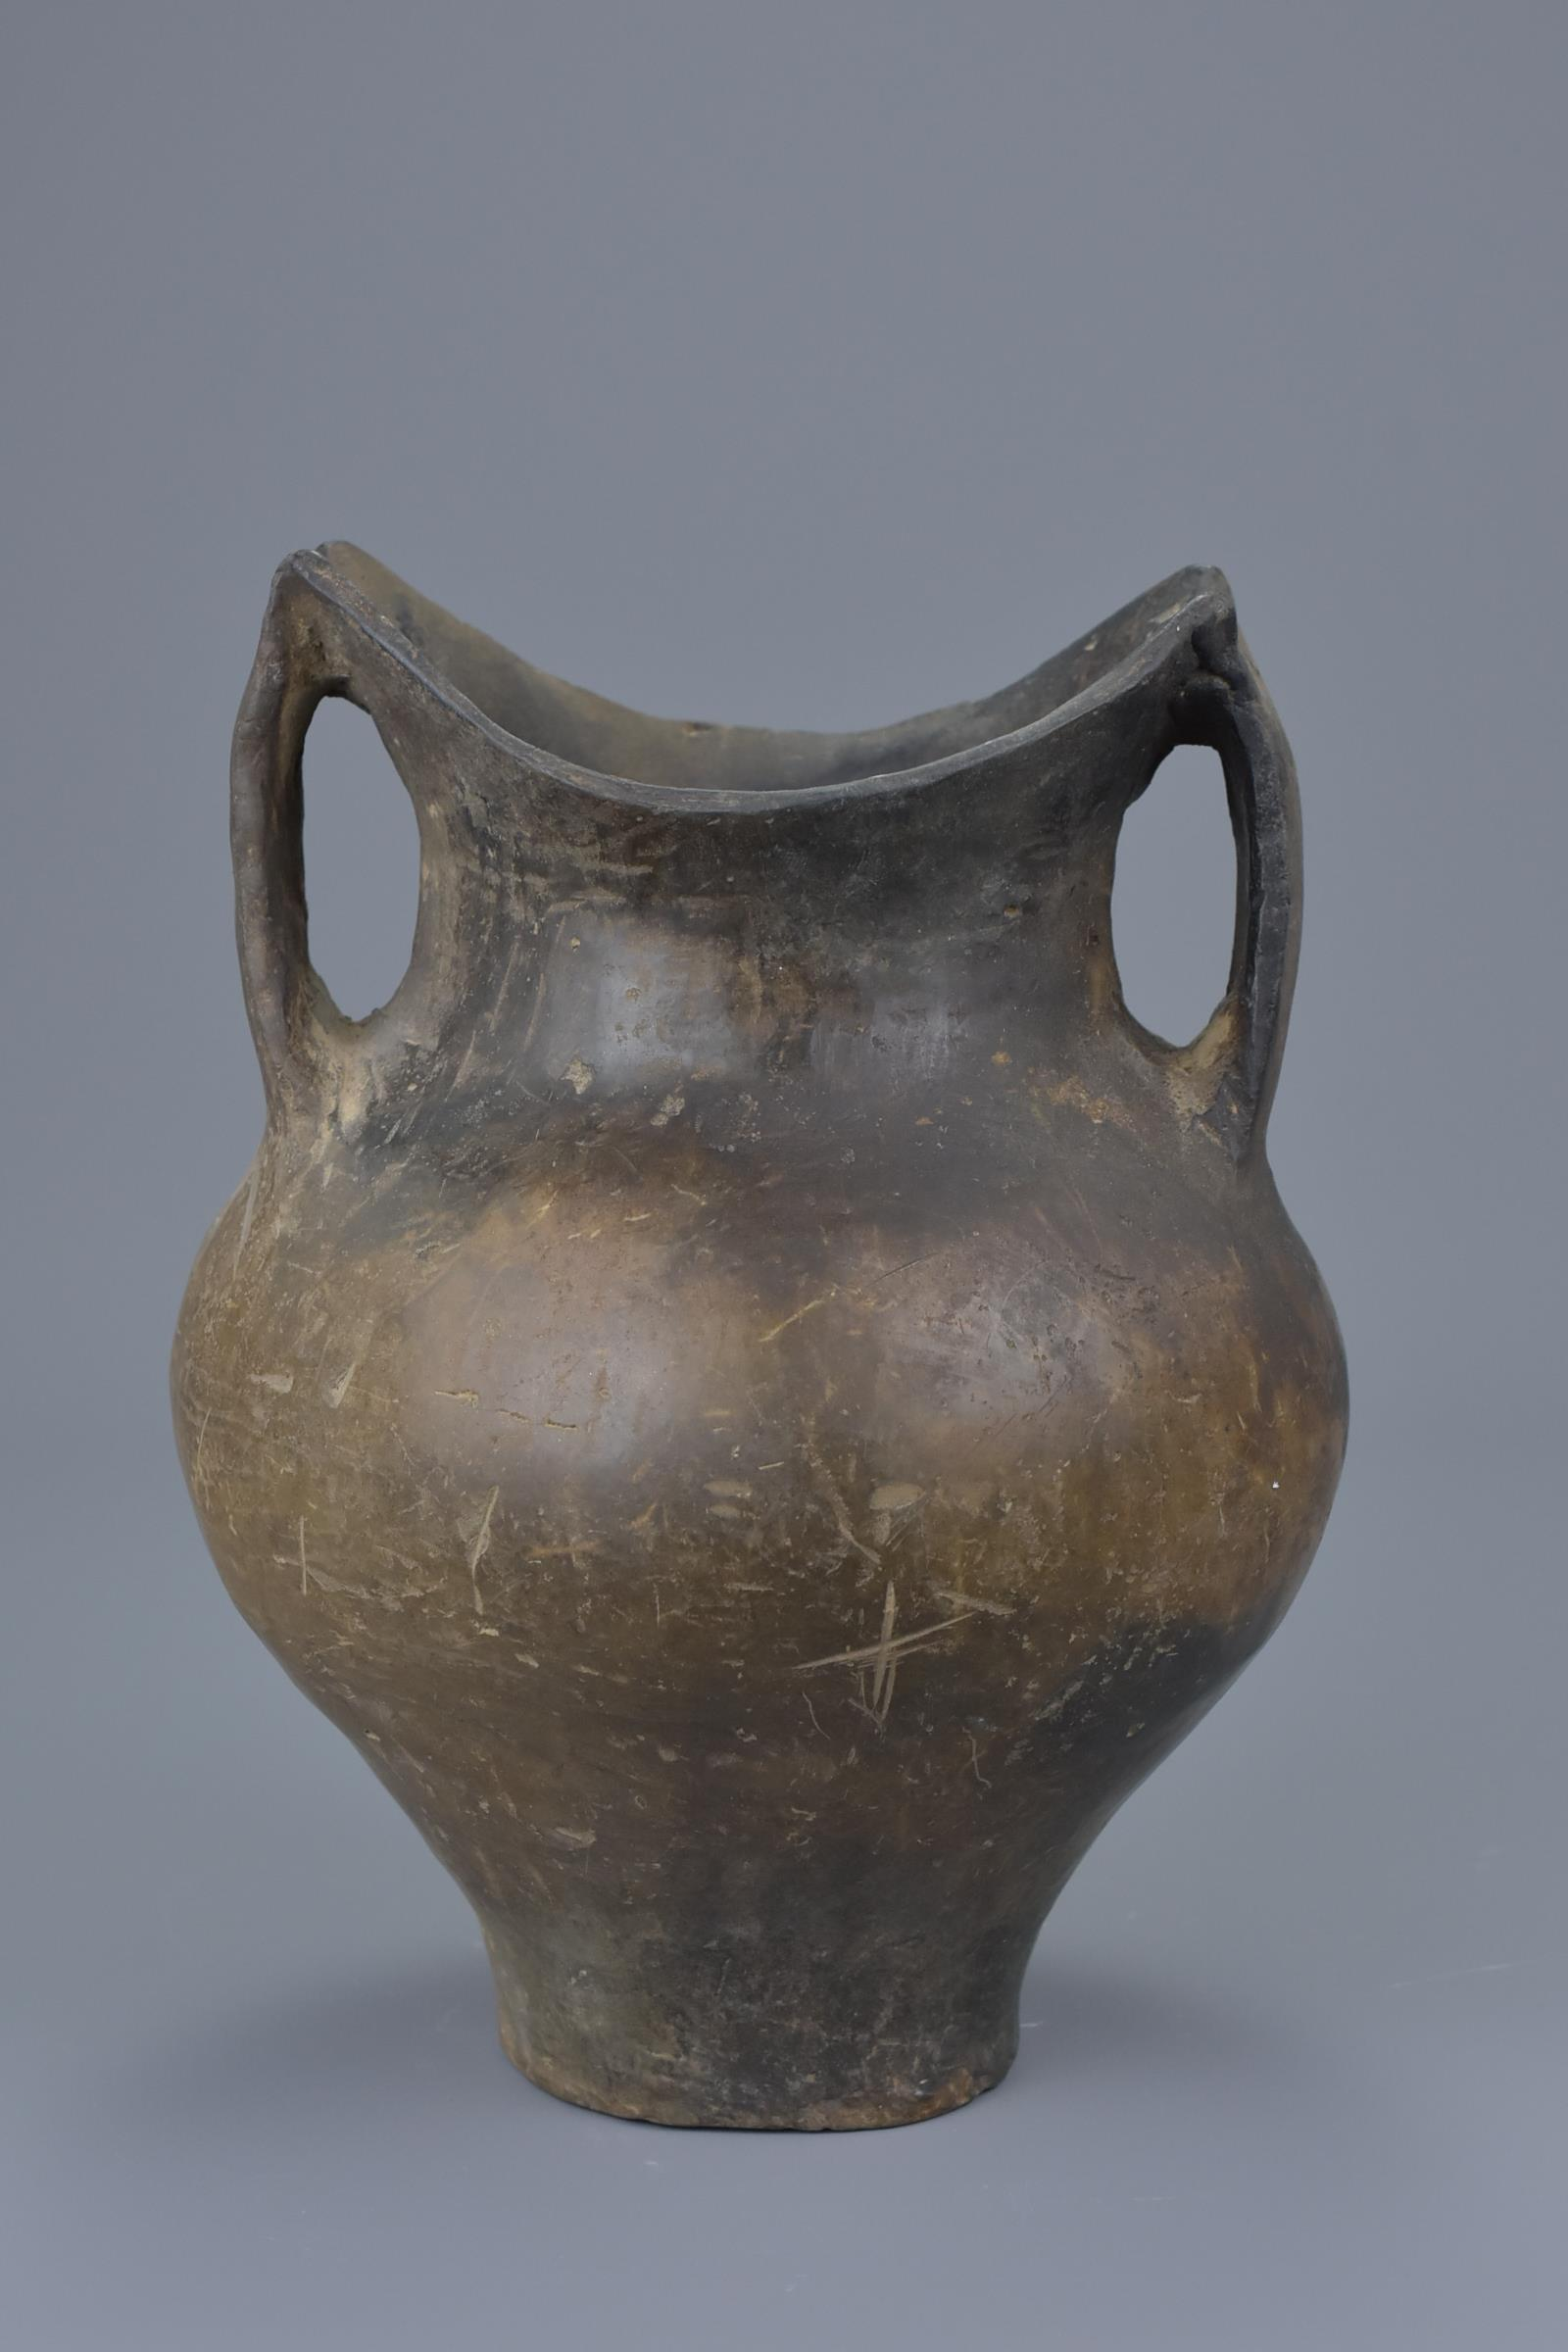 Lot 49 - A Rare Chinese Neolithic Black Pottery Jar – Siwa Culture